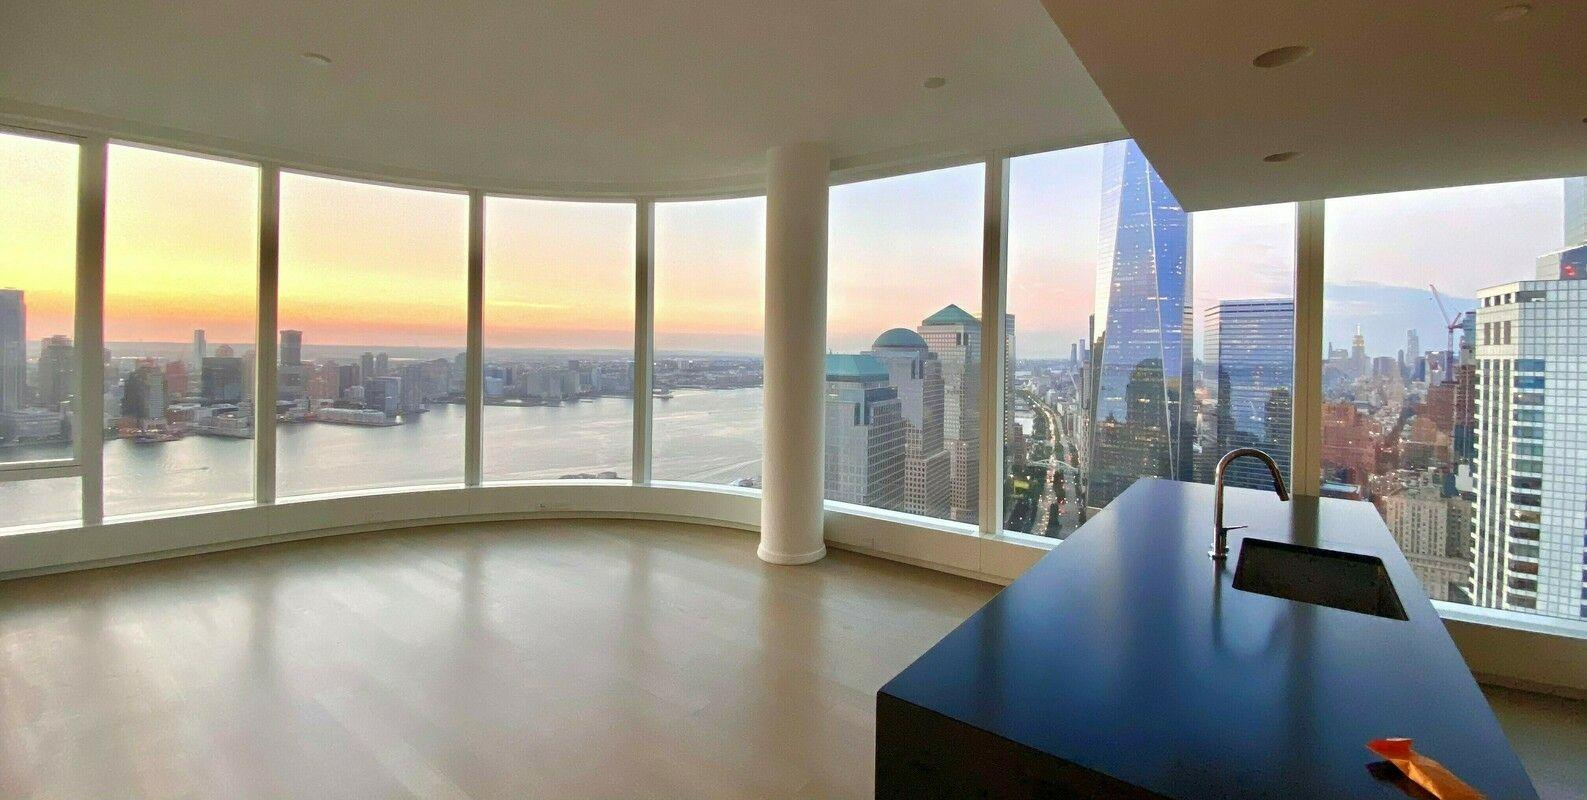 Enjoy breathtaking scenic views in this spacious two bedroom, two bathroom high-rise apartment. Located on the 52nd floor featuring curved floor-to-ceiling windows throughout the entire residence create panoramic bright views of the Manhattan Skyline showcasing   iconic New York landmarks including the Statue of Liberty, Hudson River, Battery Park, and One World Trade. Bright Master Bedroom facing West, overlooking the New York Harbor's iconic Statue of Liberty. The master suite features multiple closets and a spa   designed en-suite bathroom with double, marble vanity, radiant floor heating, glass rain shower and separate soaking tub, and high-end finishes such as Toto and Hansgrohe. The unit also features a walk-in closet that can be converted to an office or second   bedroom, and an in-unit washer and dryer. 50 West, a 64-story residential tower located in the center of the New Downtown, features unparalleled views of the New York Harbor, the Hudson and East Rivers, the Statue of Liberty, and Ellis Island. Internationally-acclaimed   architect Helmut Jahn has designed the approximately 780' skyscraper to feature floor-to-ceiling curved glass windows. The expansive interior layouts, ranging from one to five bedrooms and featuring an array of duplex and double height spaces, were designed   and finished by Thomas Juul-Hansen. Four floors of the tower are devoted to state-of-the-art amenities: an immense Fitness Center, the beautifully-appointed Water Club, unique amenities, and The Observatory at 50 West Street, a spectacular 64th floor outdoor   entertaining space with seemingly infinite views of New York and beyond.